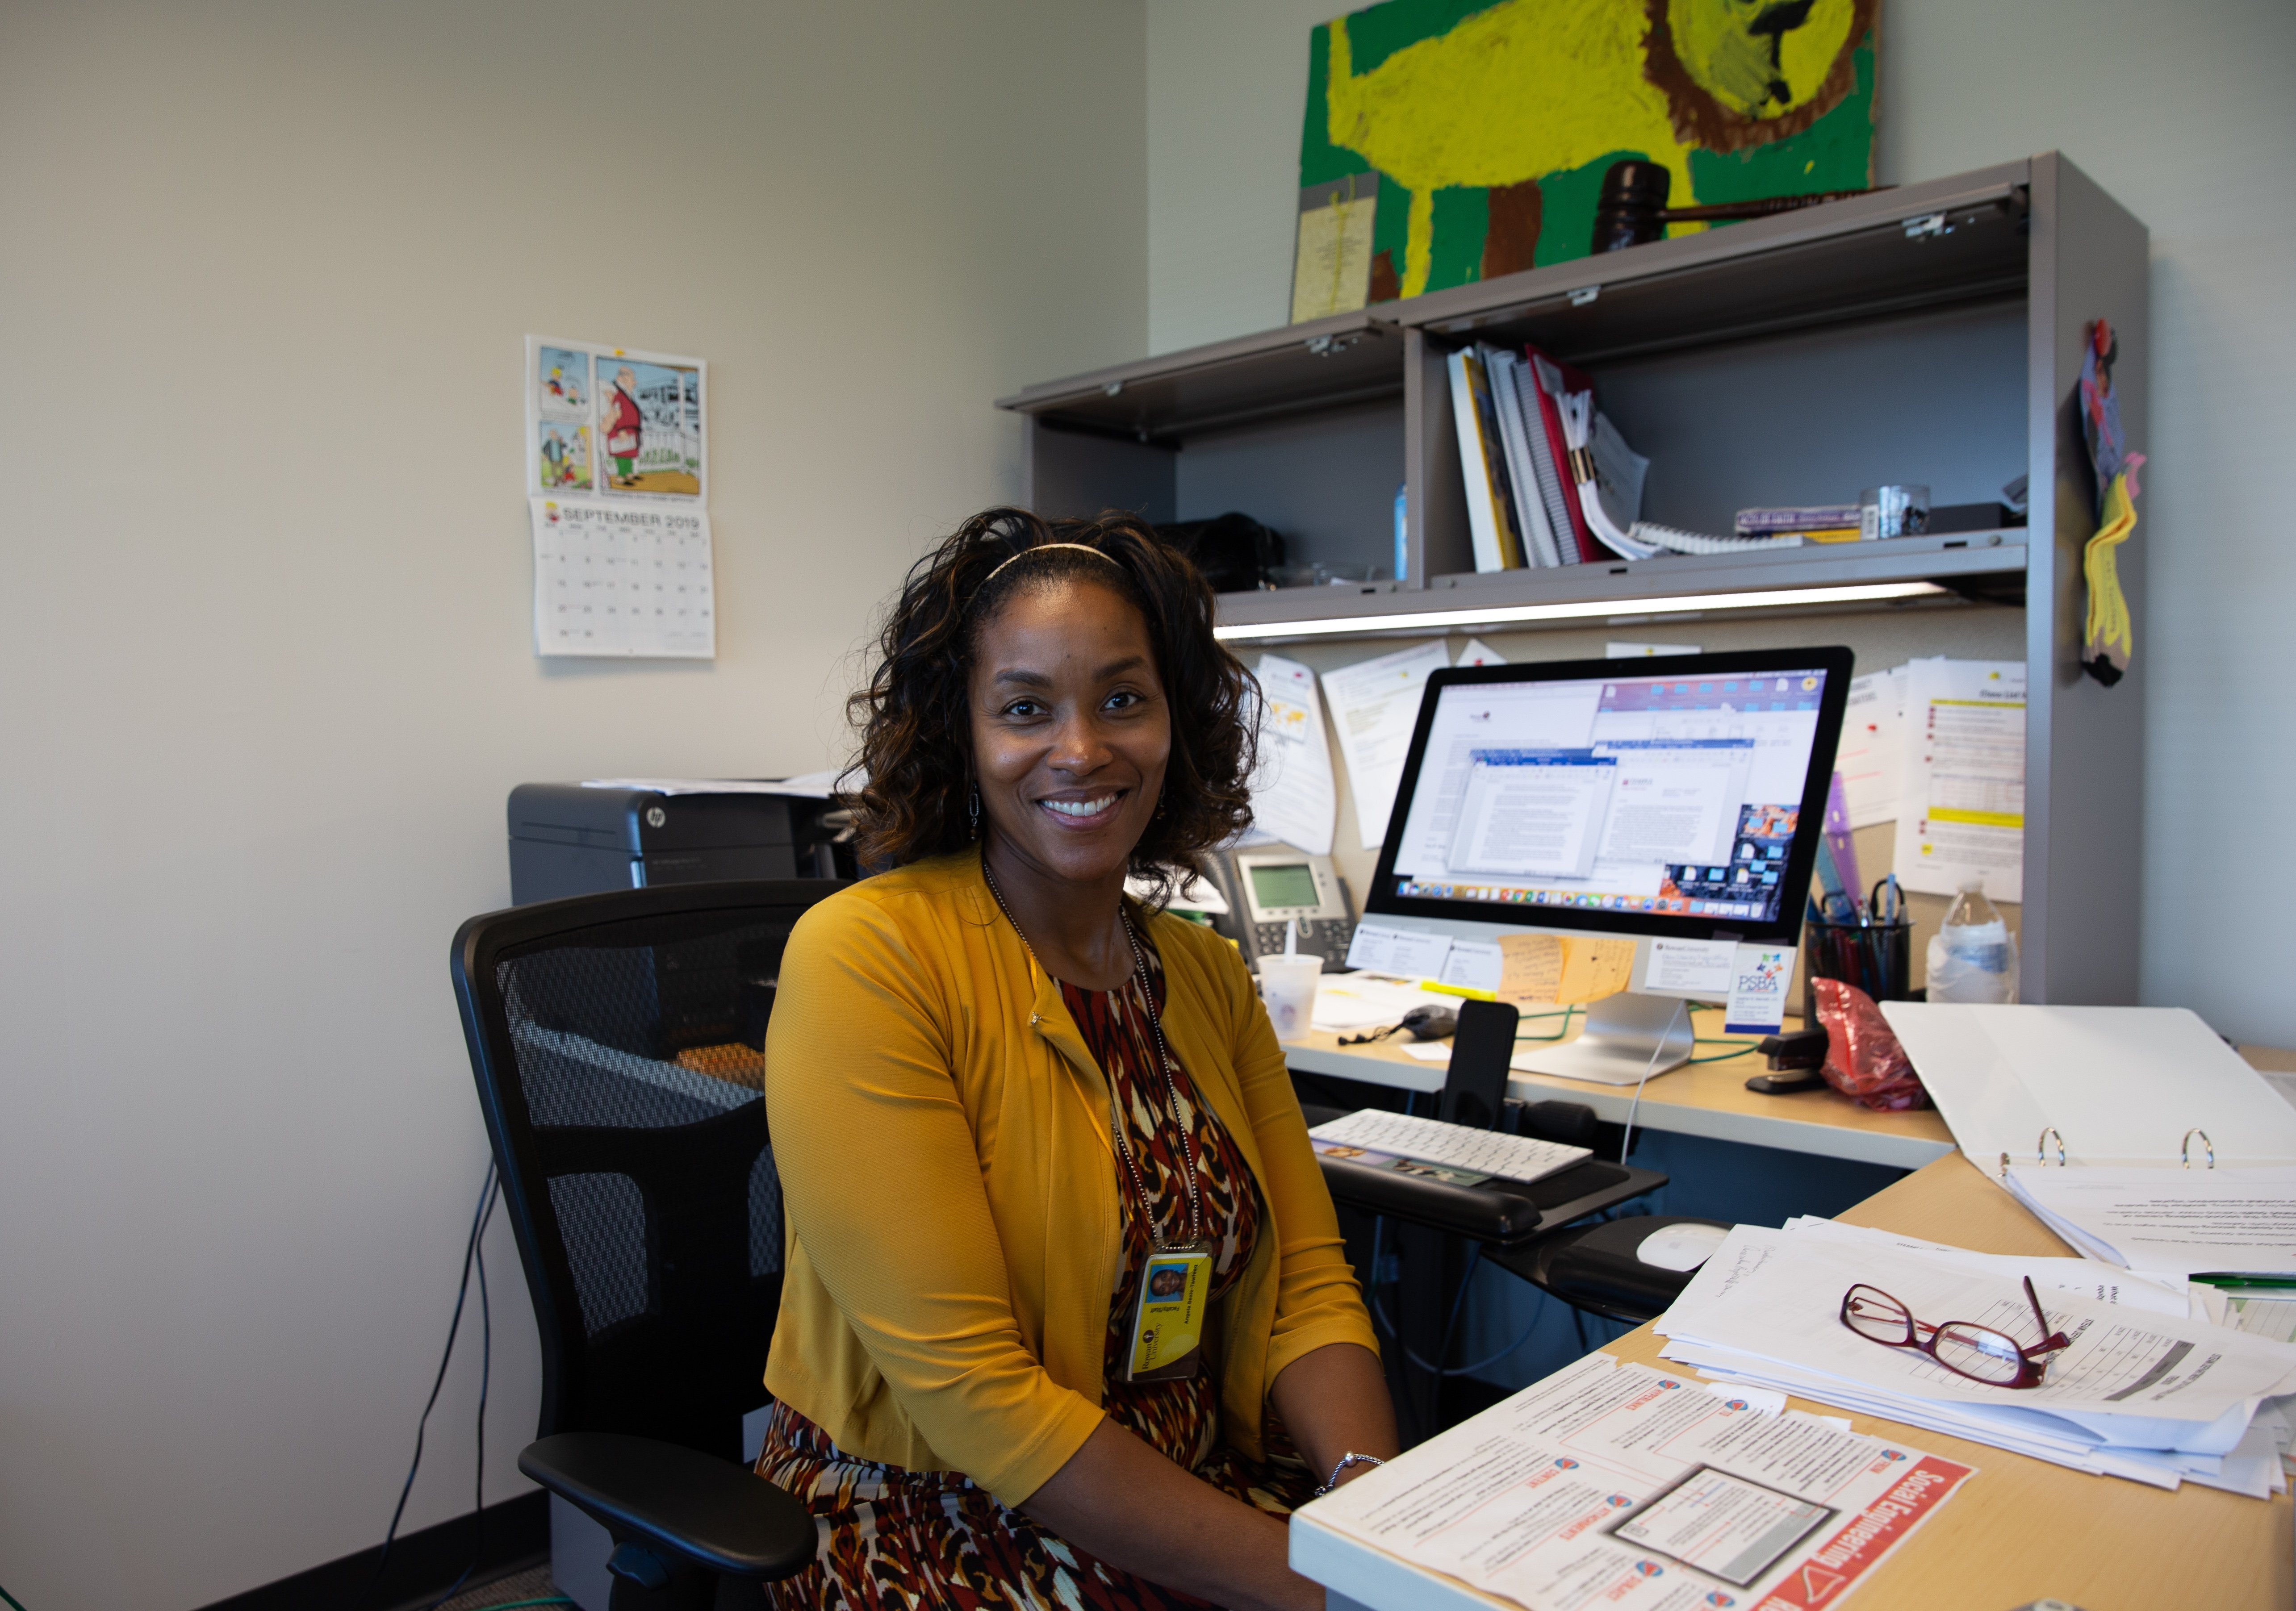 Dr. Angela Beale-Tawfeeq sitting at her desk.